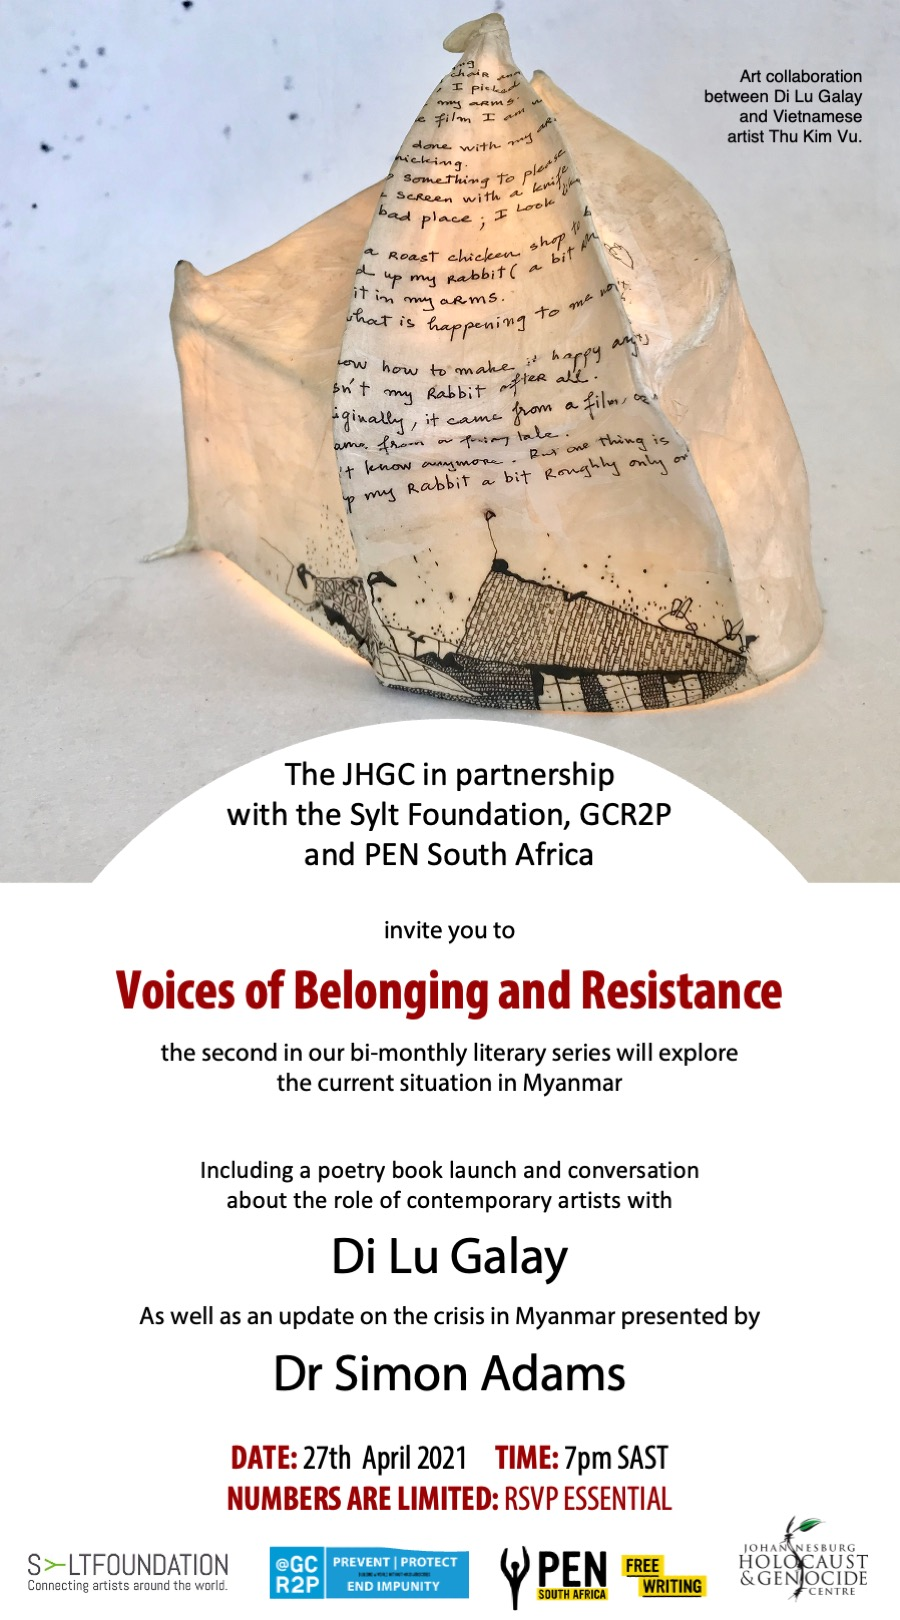 Voices of Belonging and Resistance